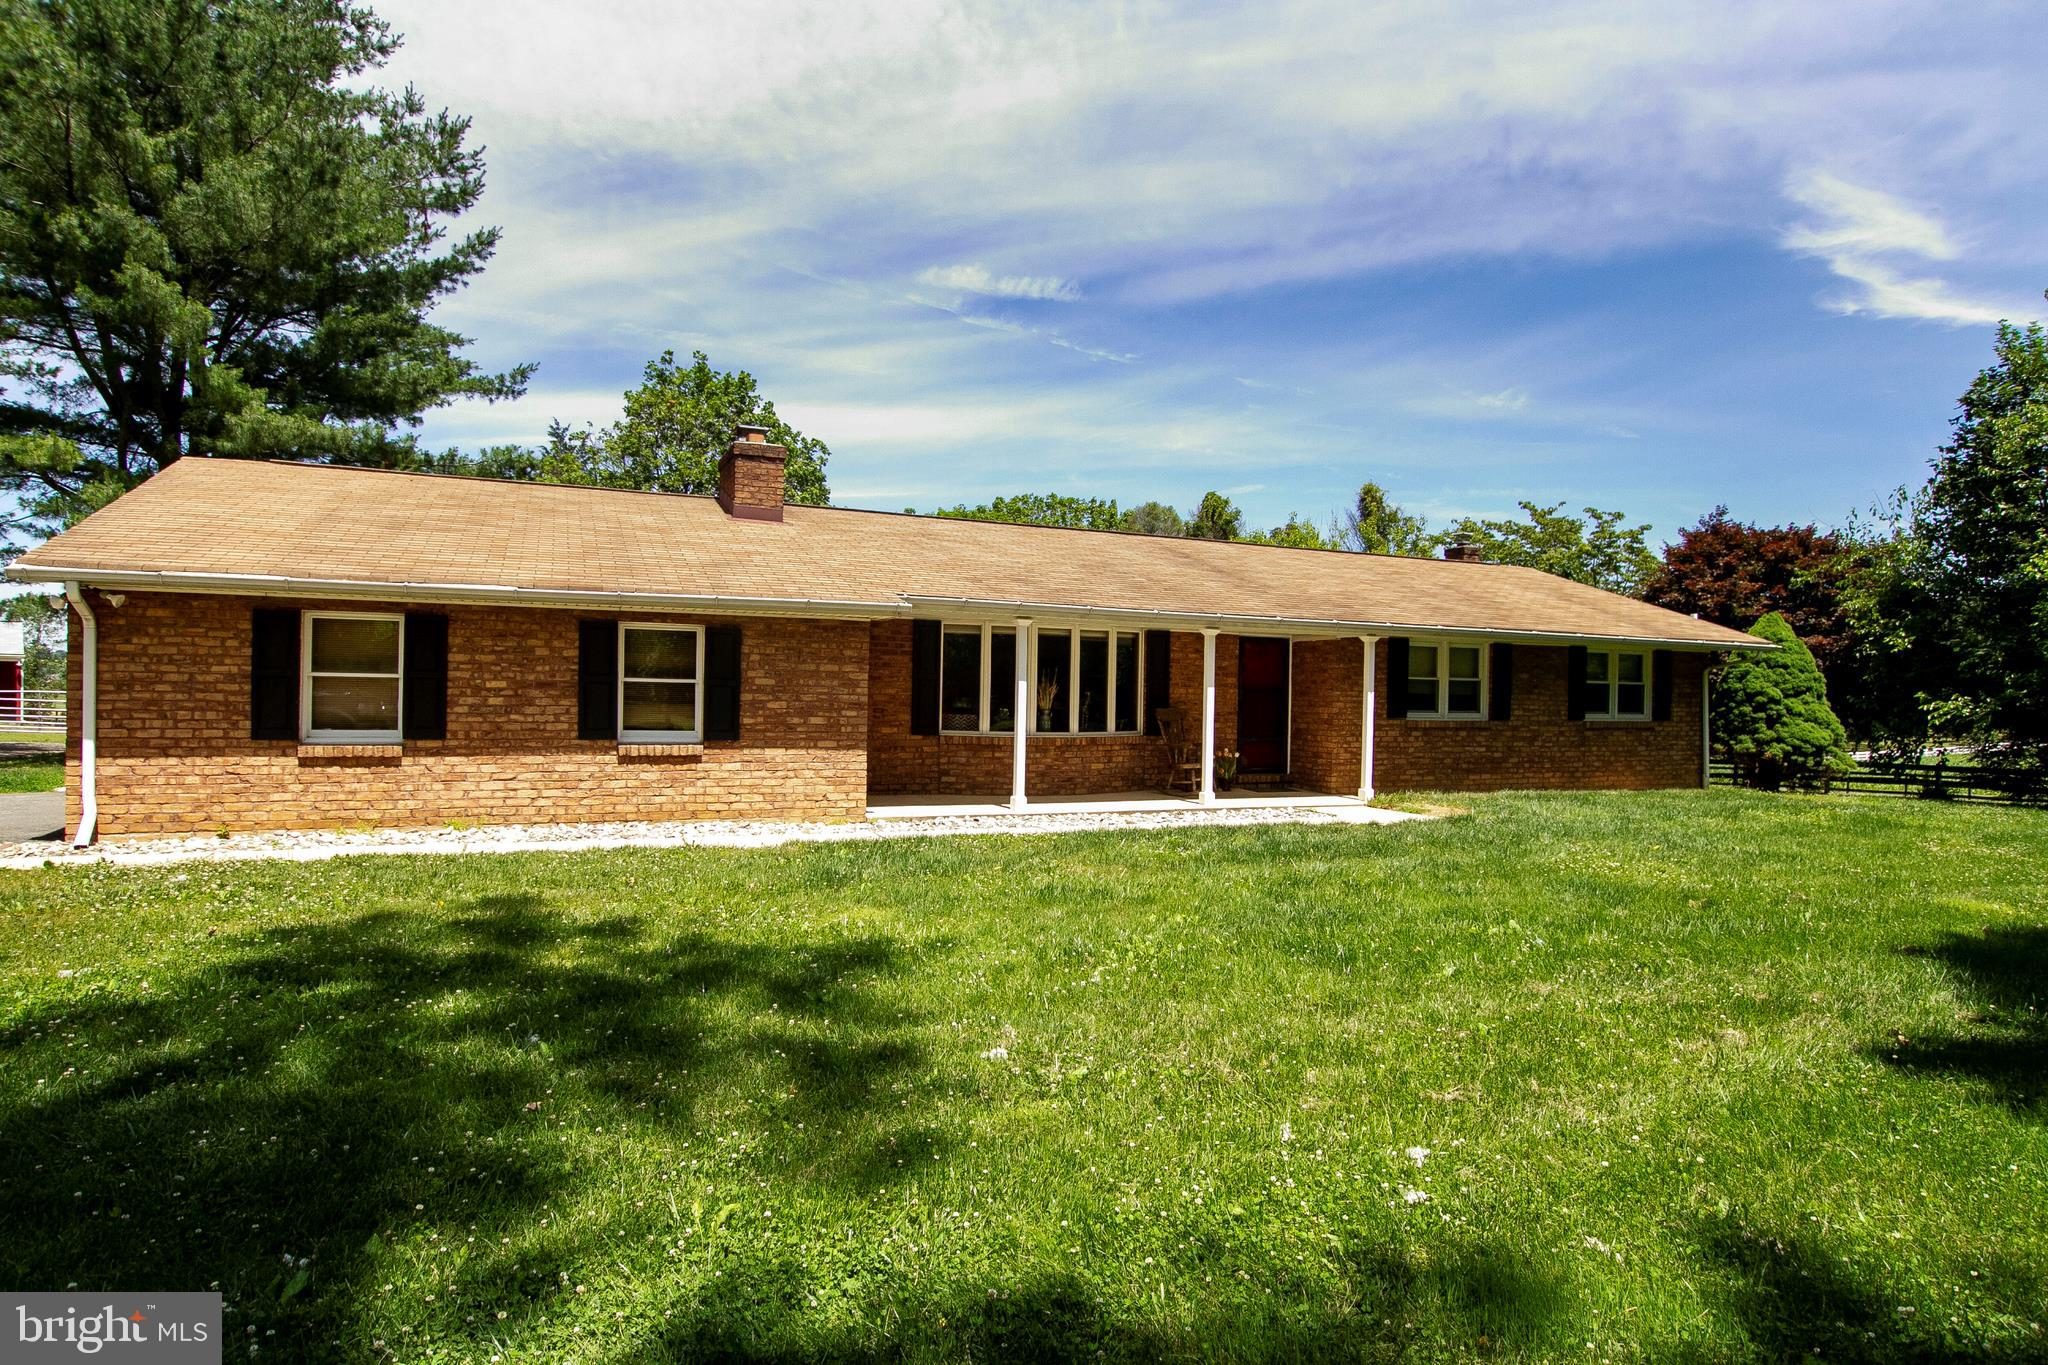 5002 W HEAPS ROAD, PYLESVILLE, MD 21132